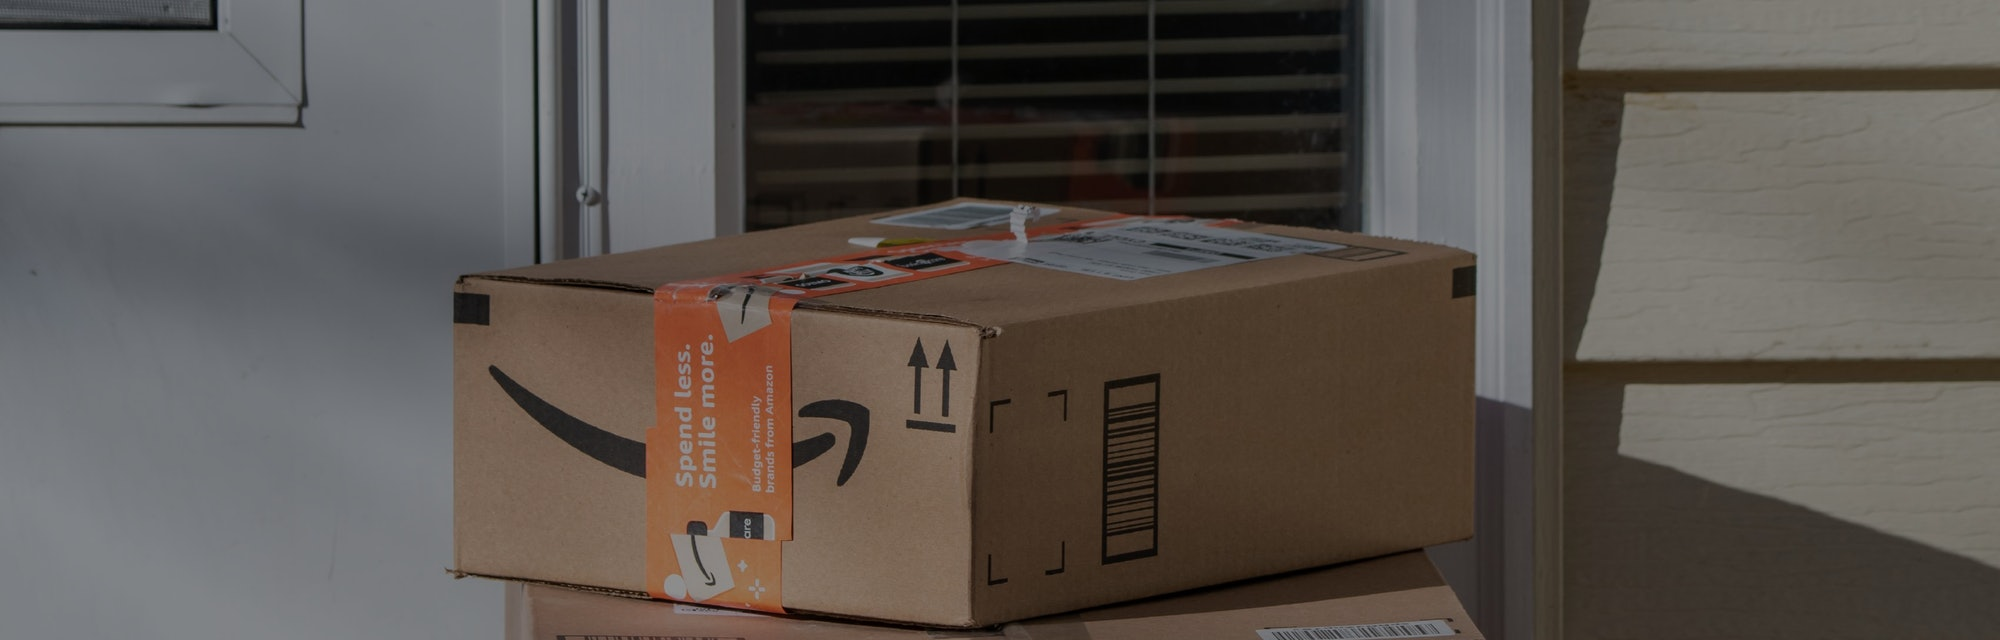 Amazon delivery, packages at residential door, Vadnais Heights, Minnesota. (Photo by: Michael Siluk/...